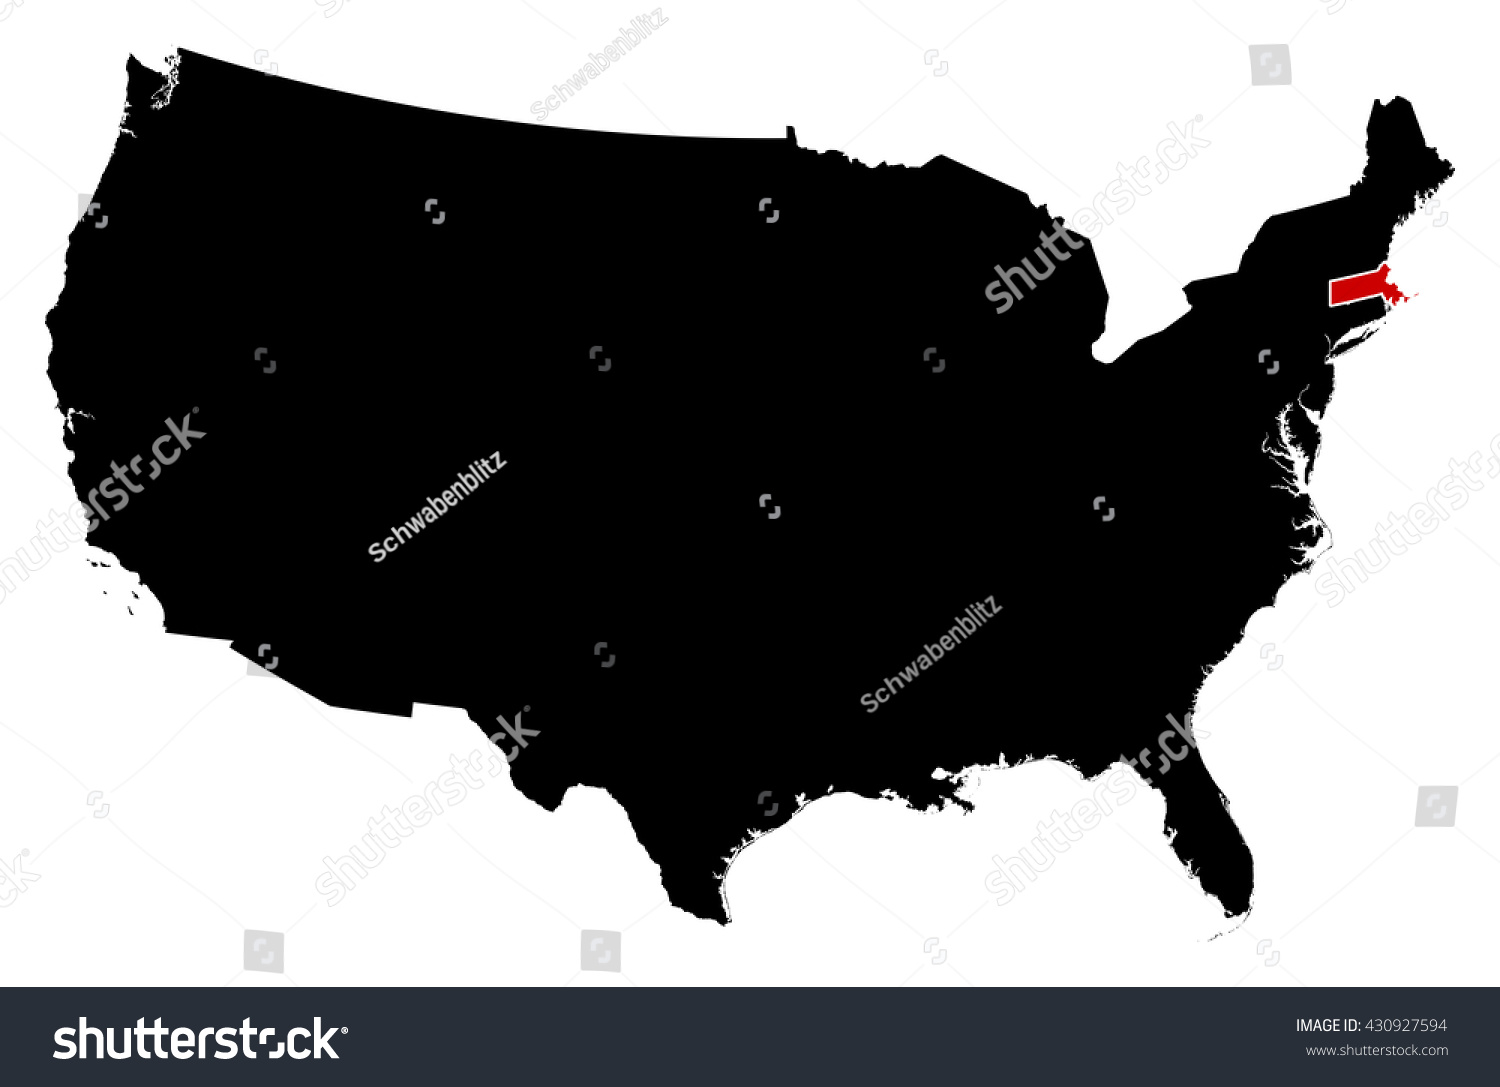 Map United States Massachusetts Stock Vector Shutterstock - Massachusetts us map